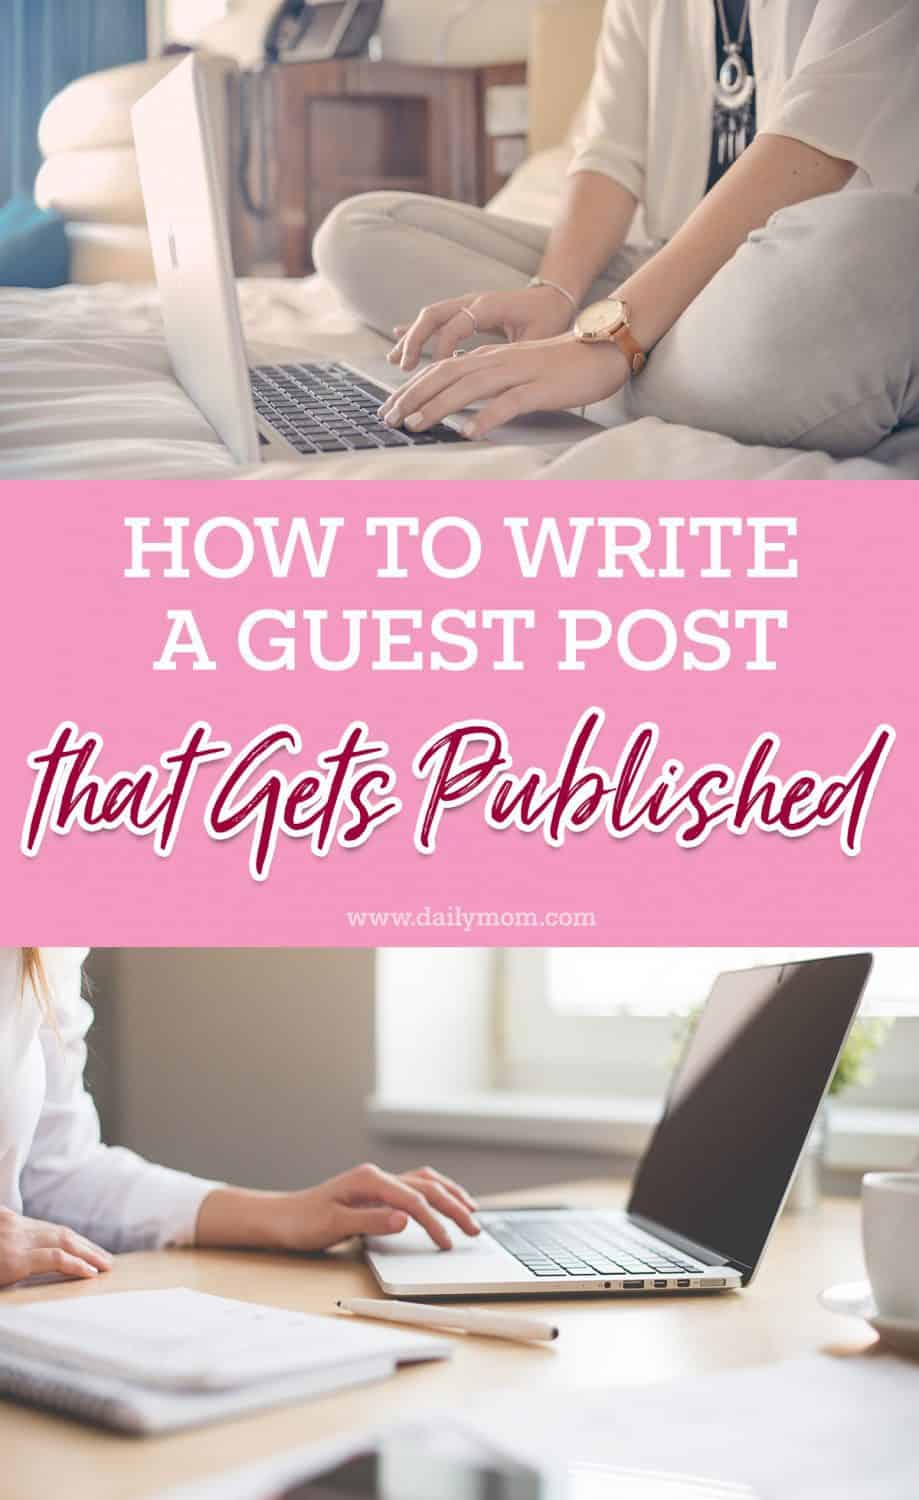 How to Write a Guest Post that Gets Published 6 Daily Mom Parents Portal